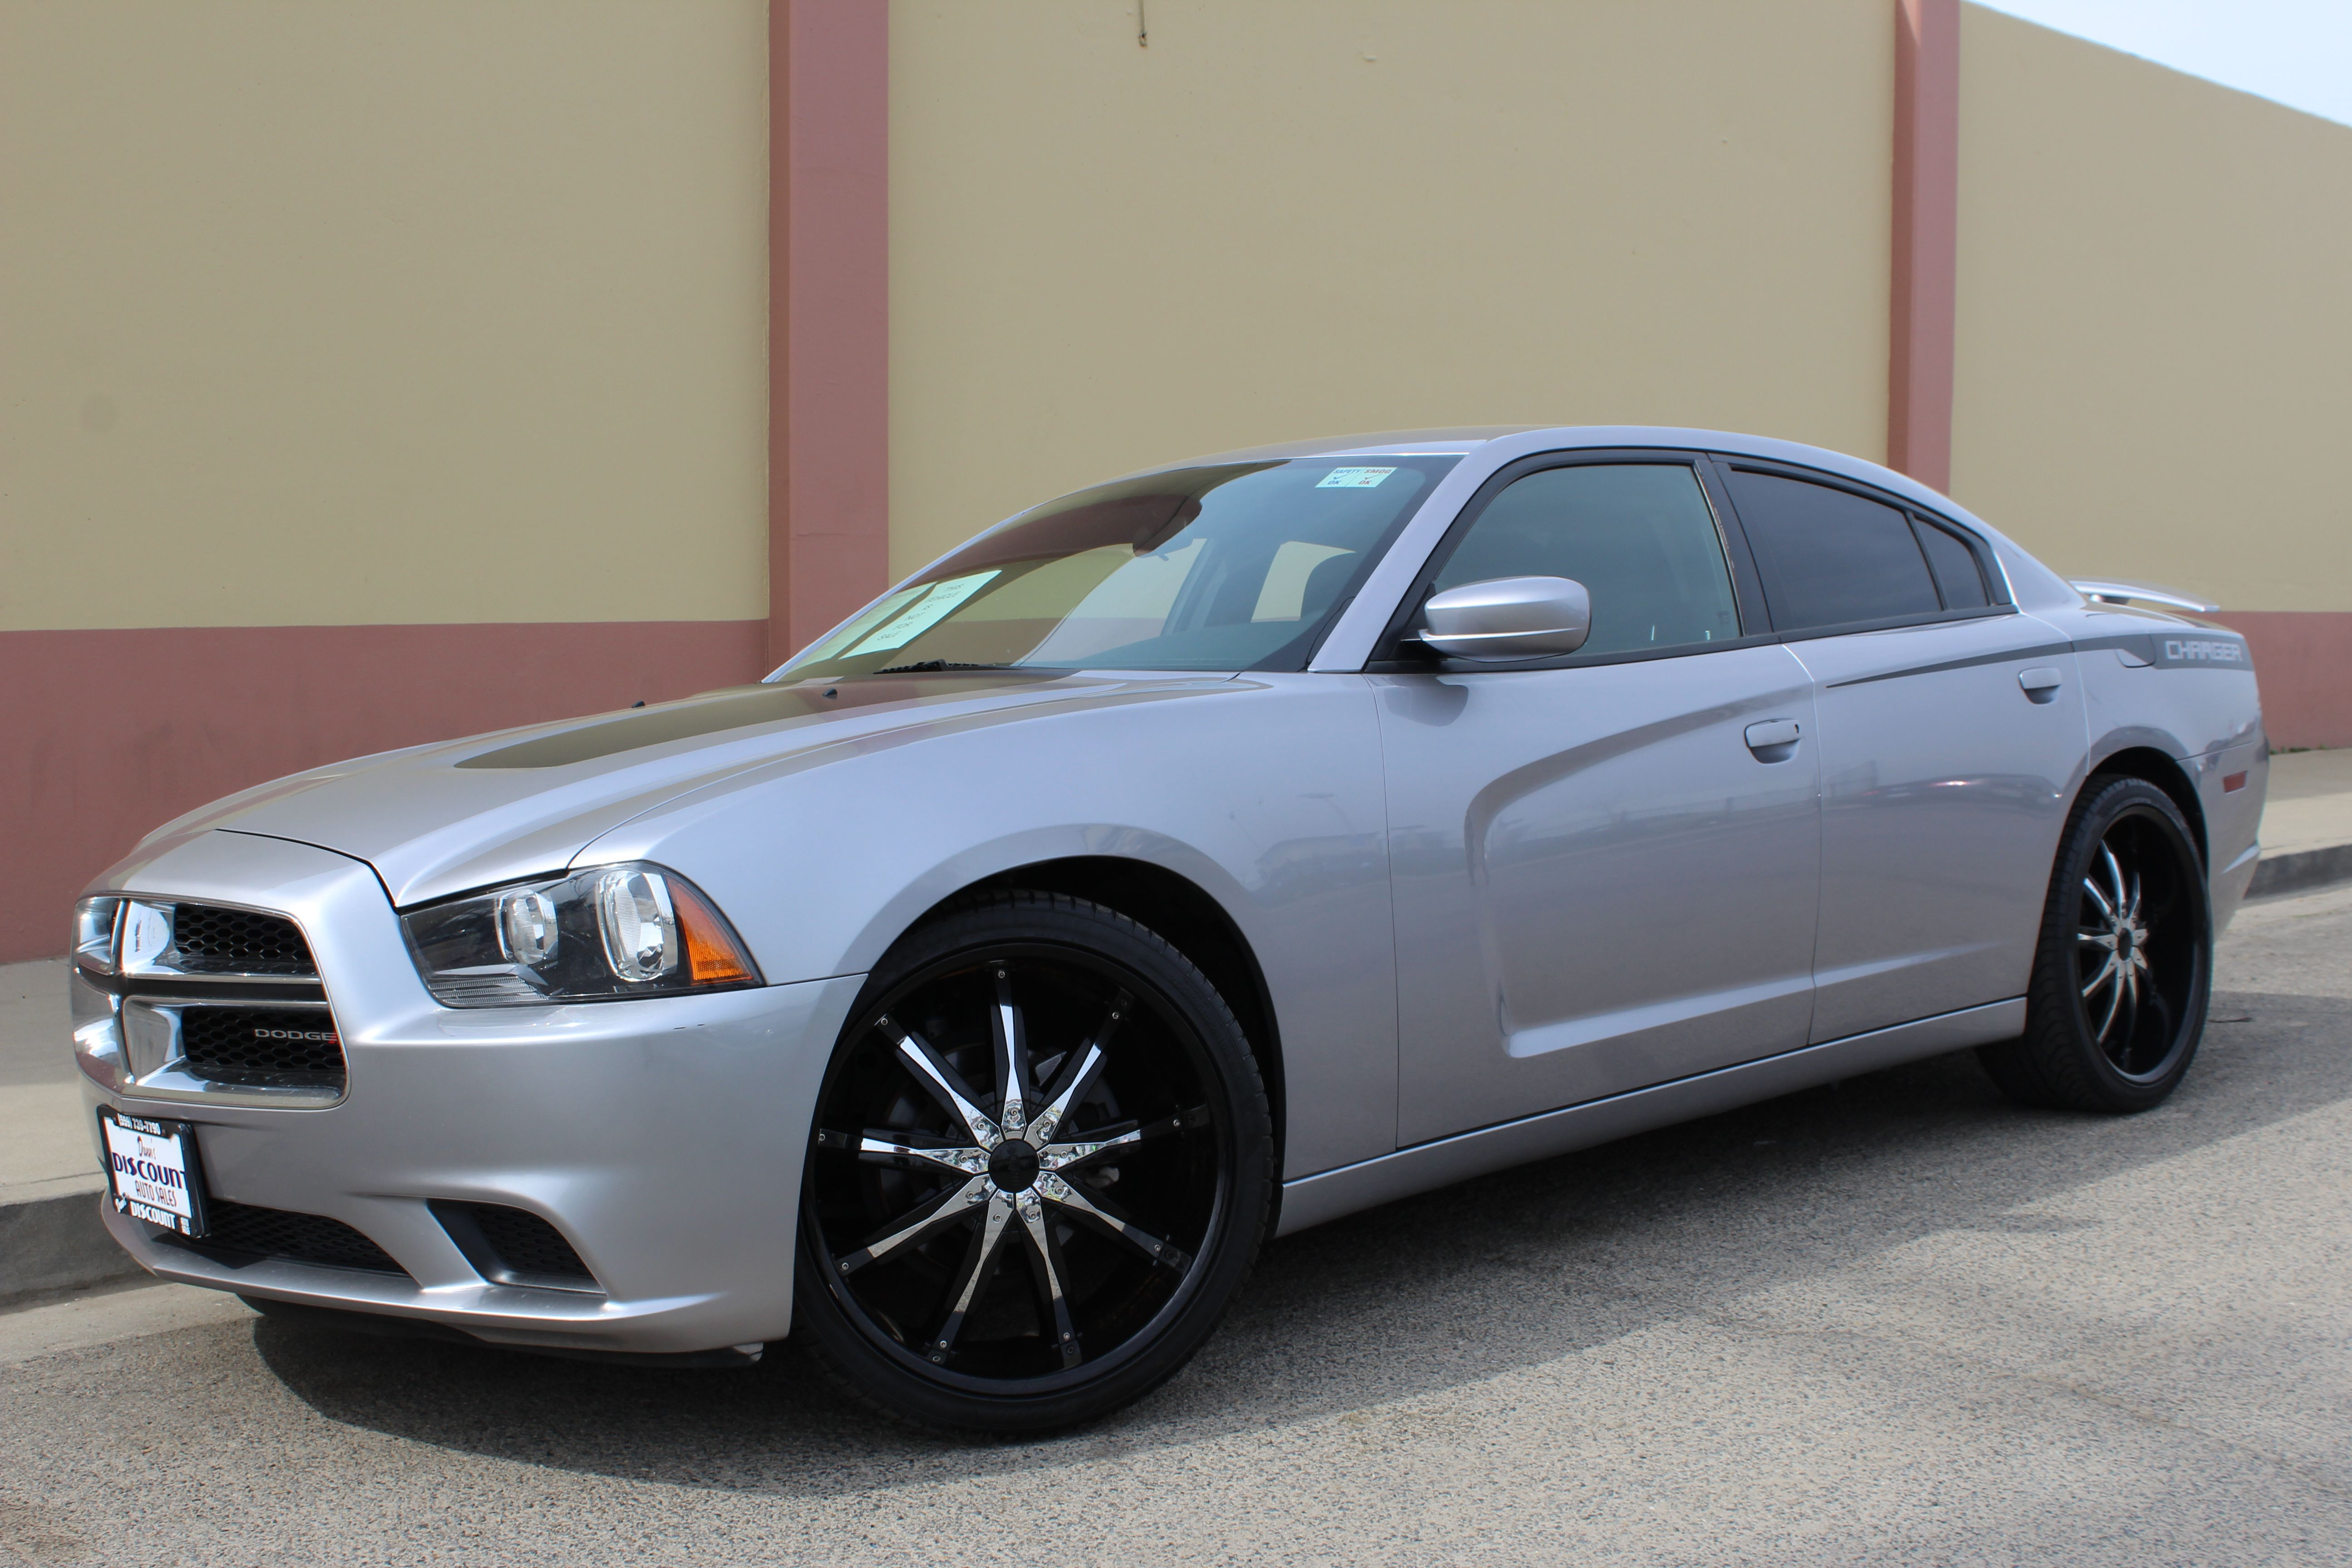 230 used cars trucks suvs in stock in visalia with images cars for sale 2013 dodge charger dodge charger 230 used cars trucks suvs in stock in visalia with images cars for sale 2013 dodge charger dodge charger